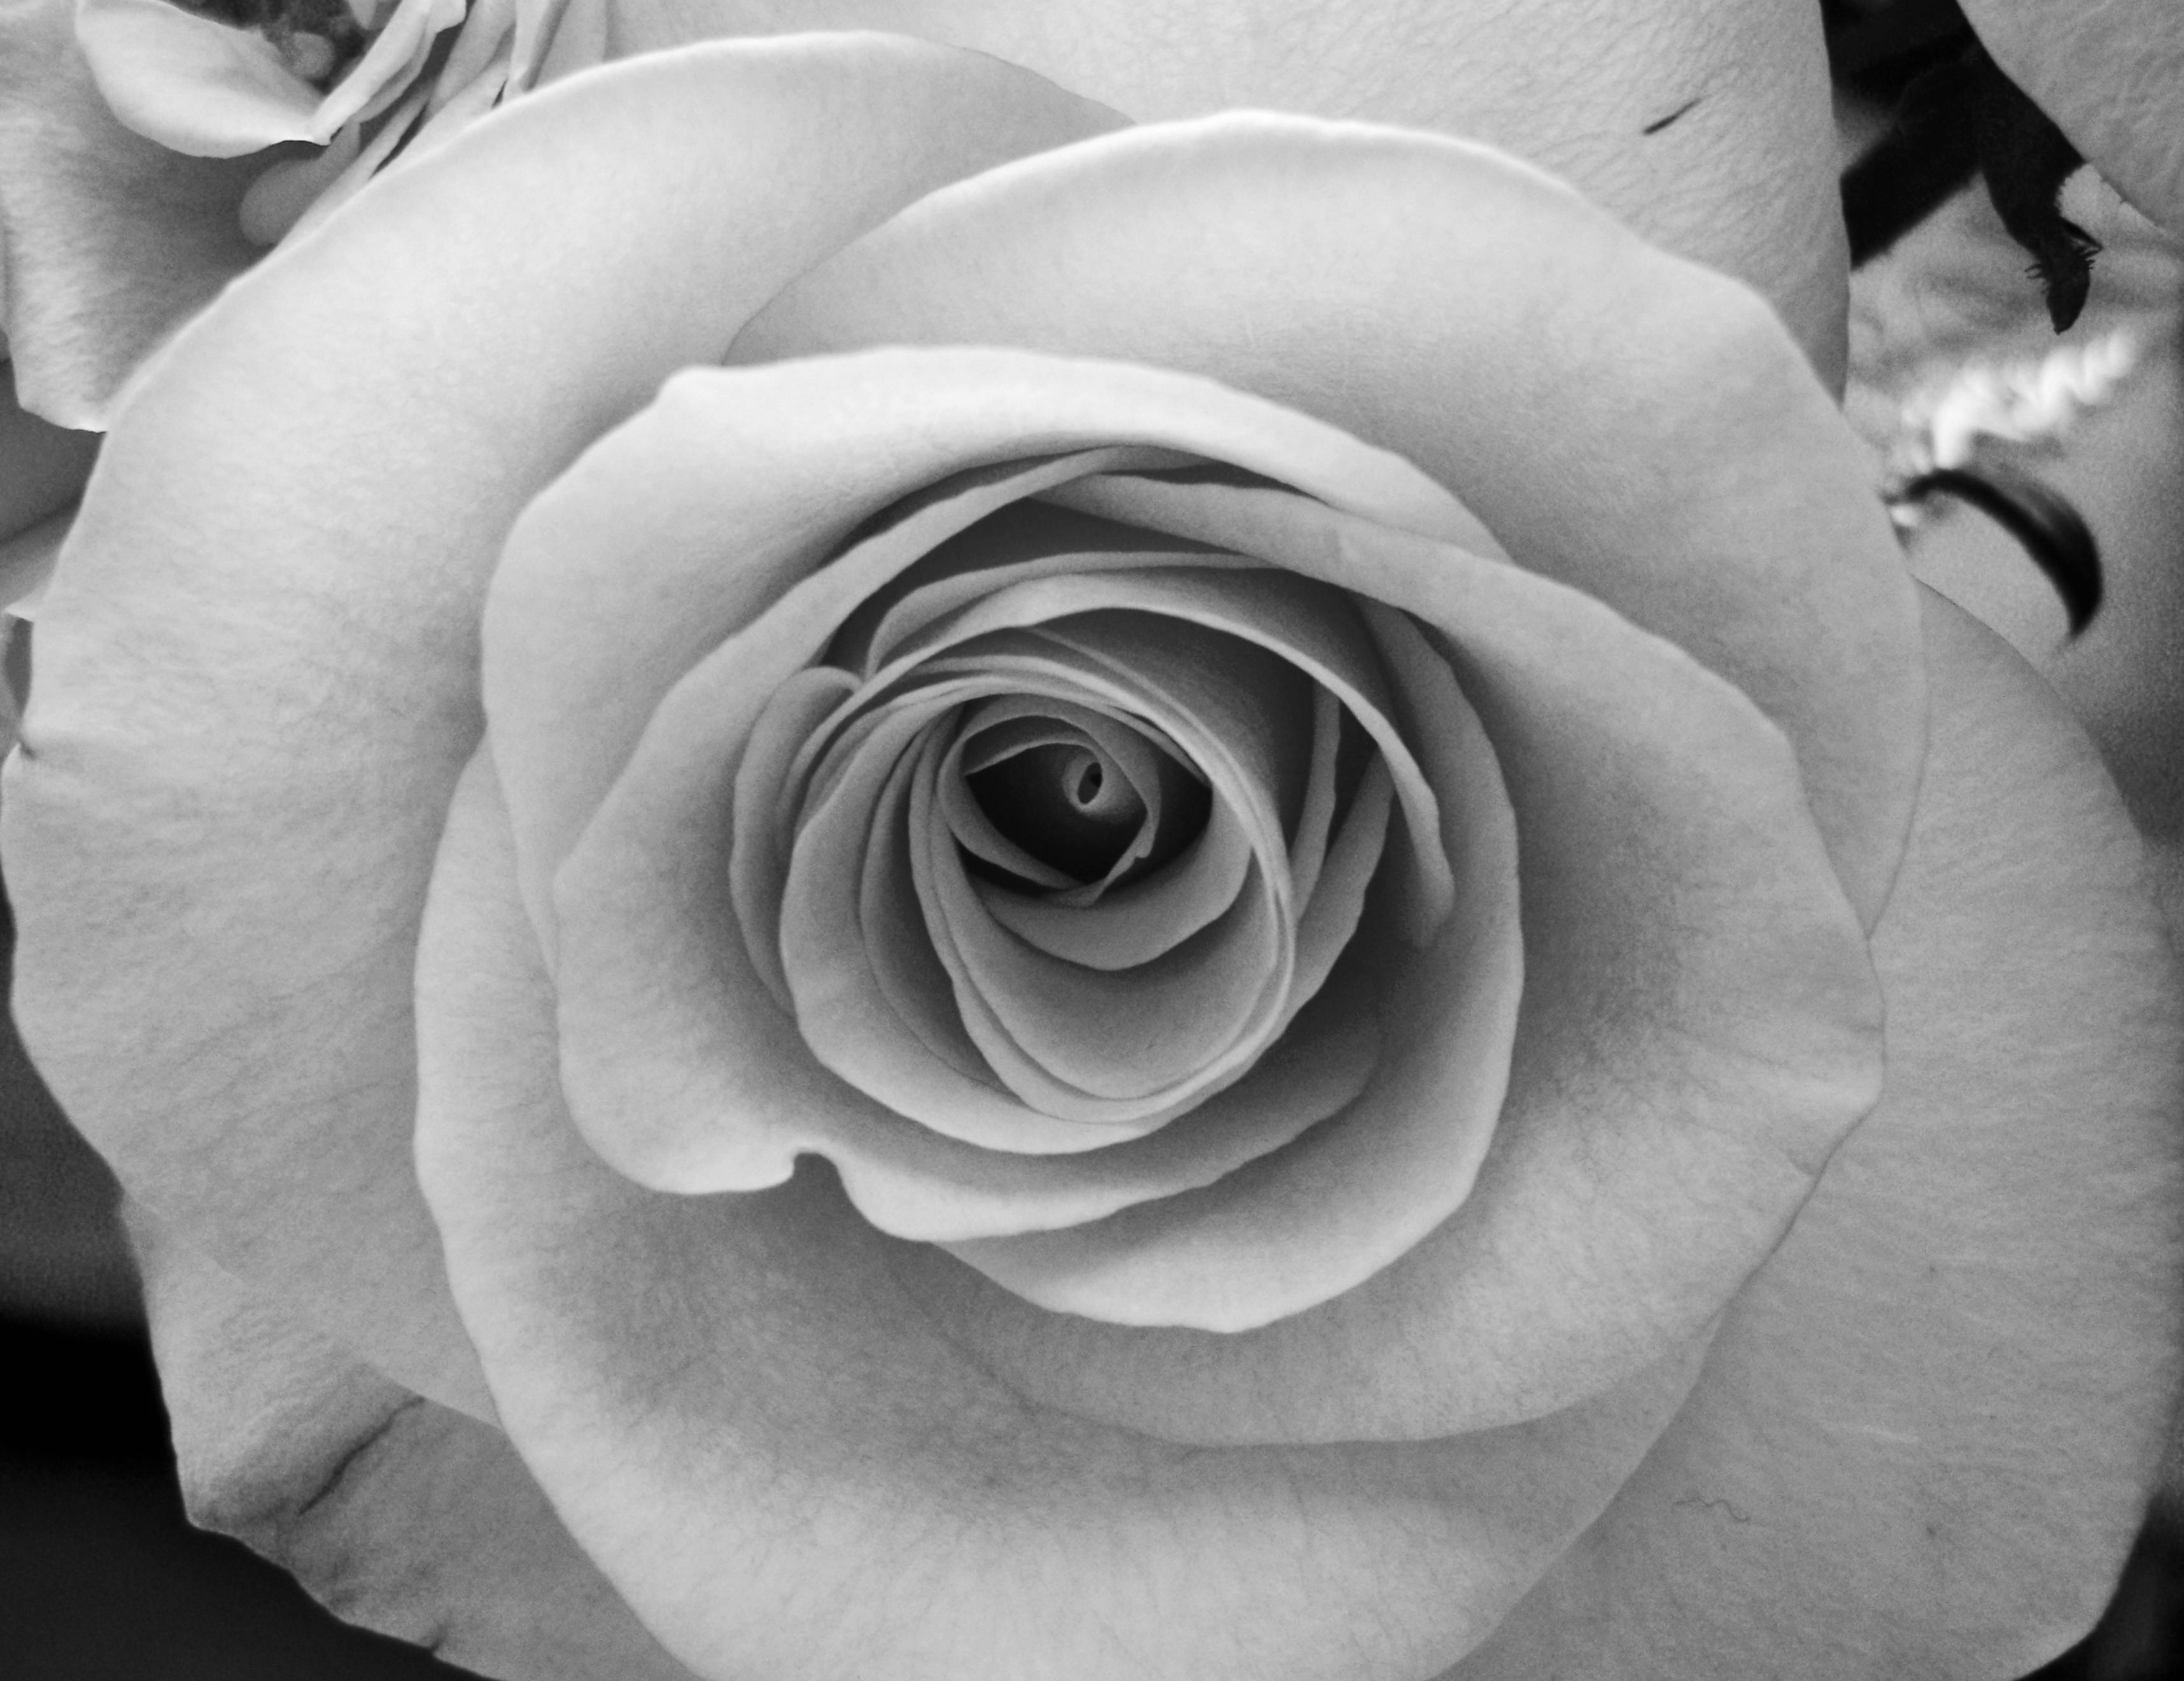 Black and White Rose Wallpapers - Top